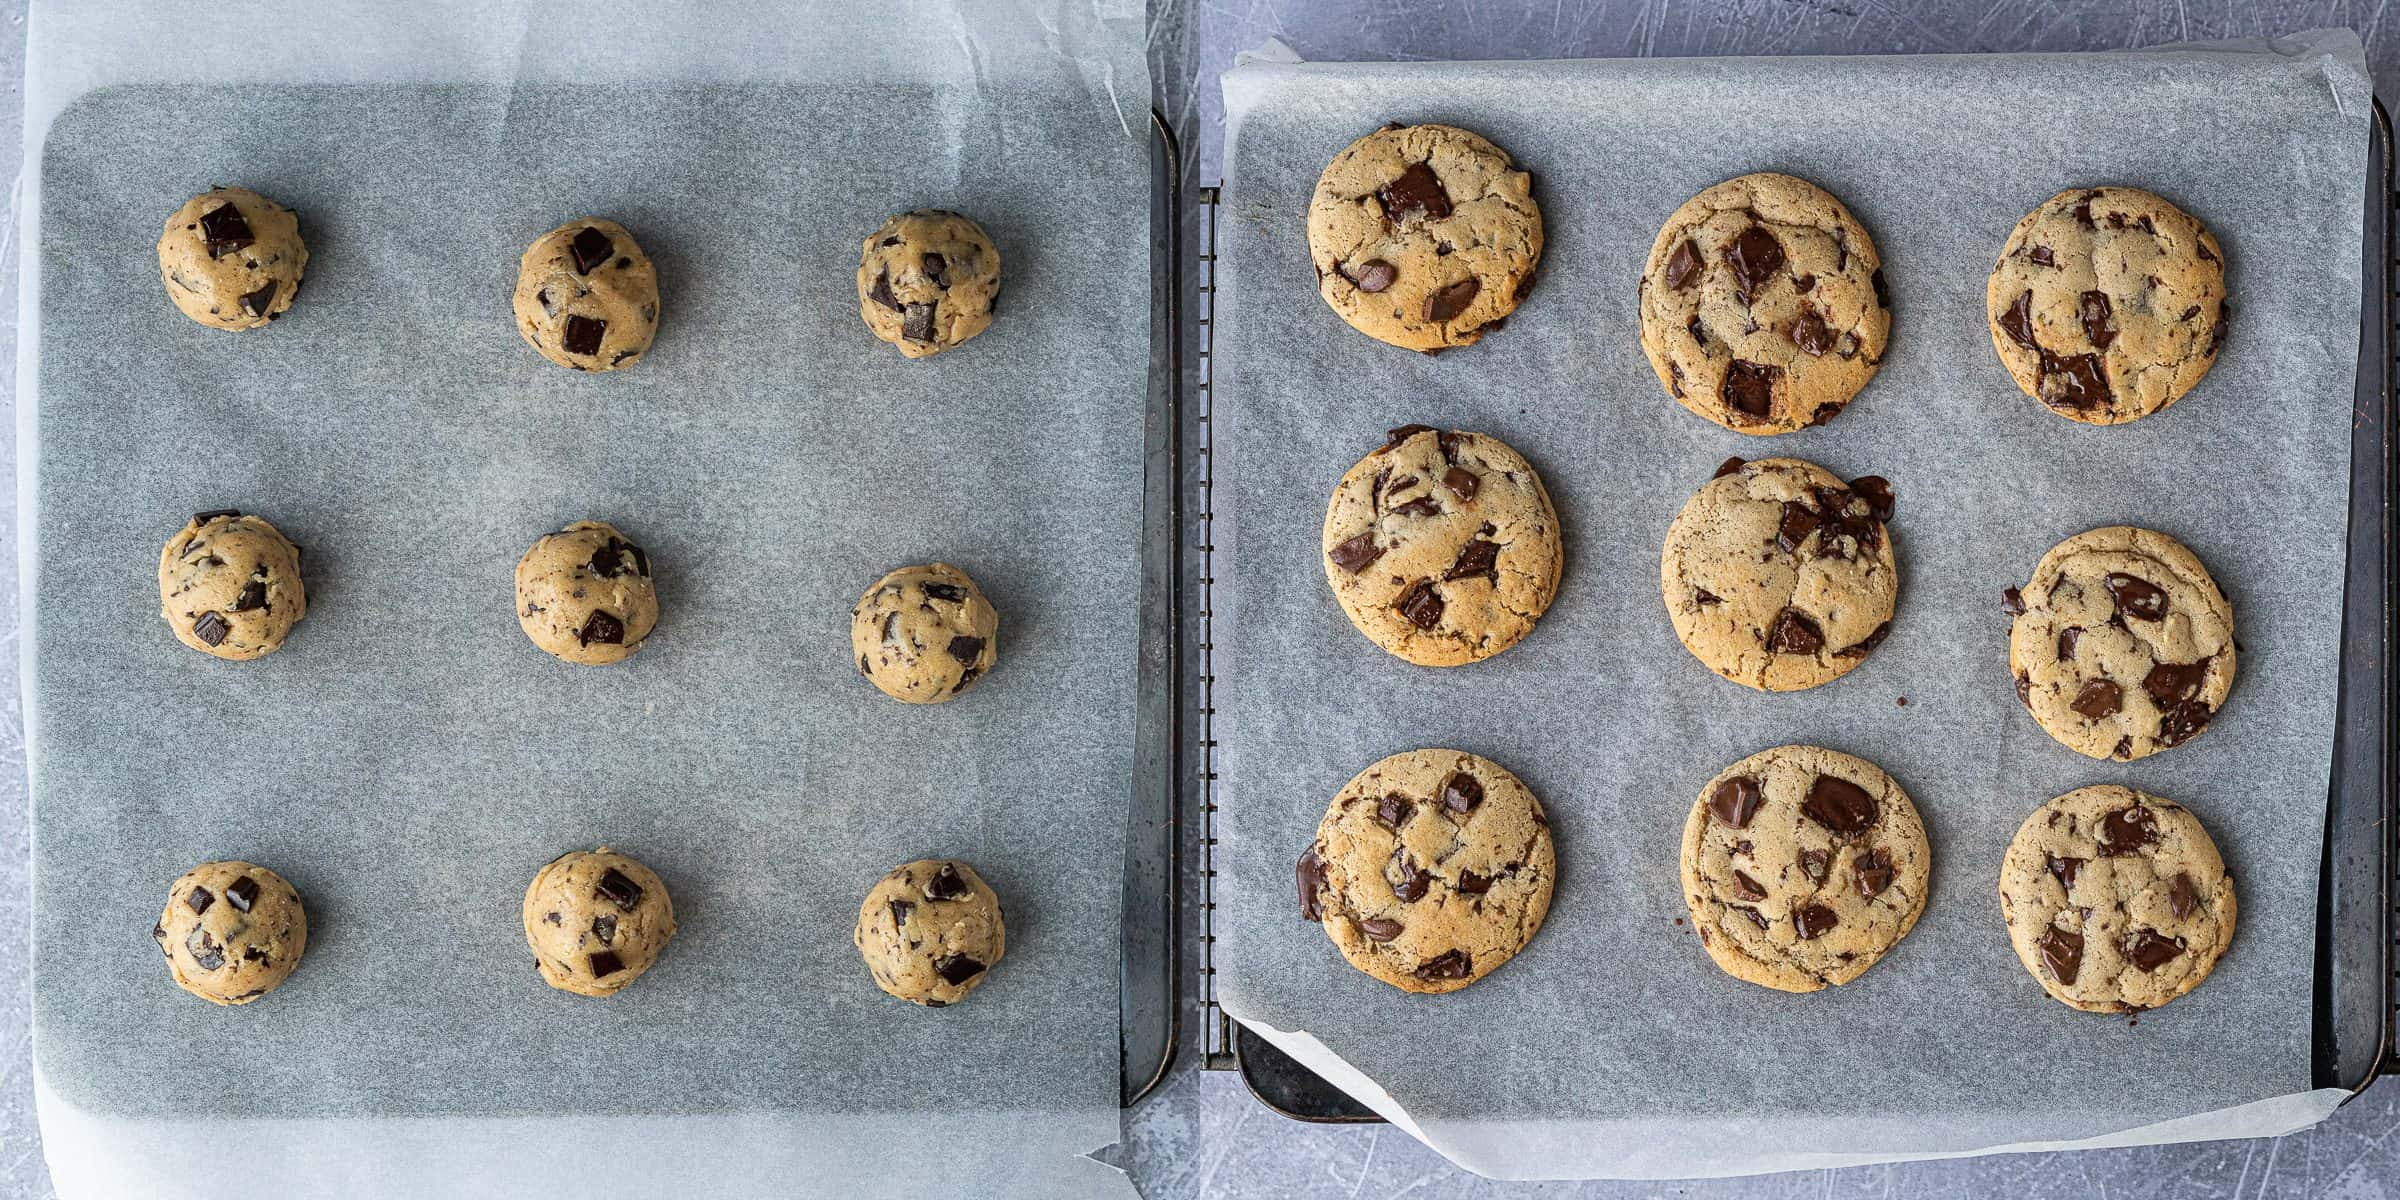 Step 3 - a two image collage of the unbaked cookies and the baked cookies.